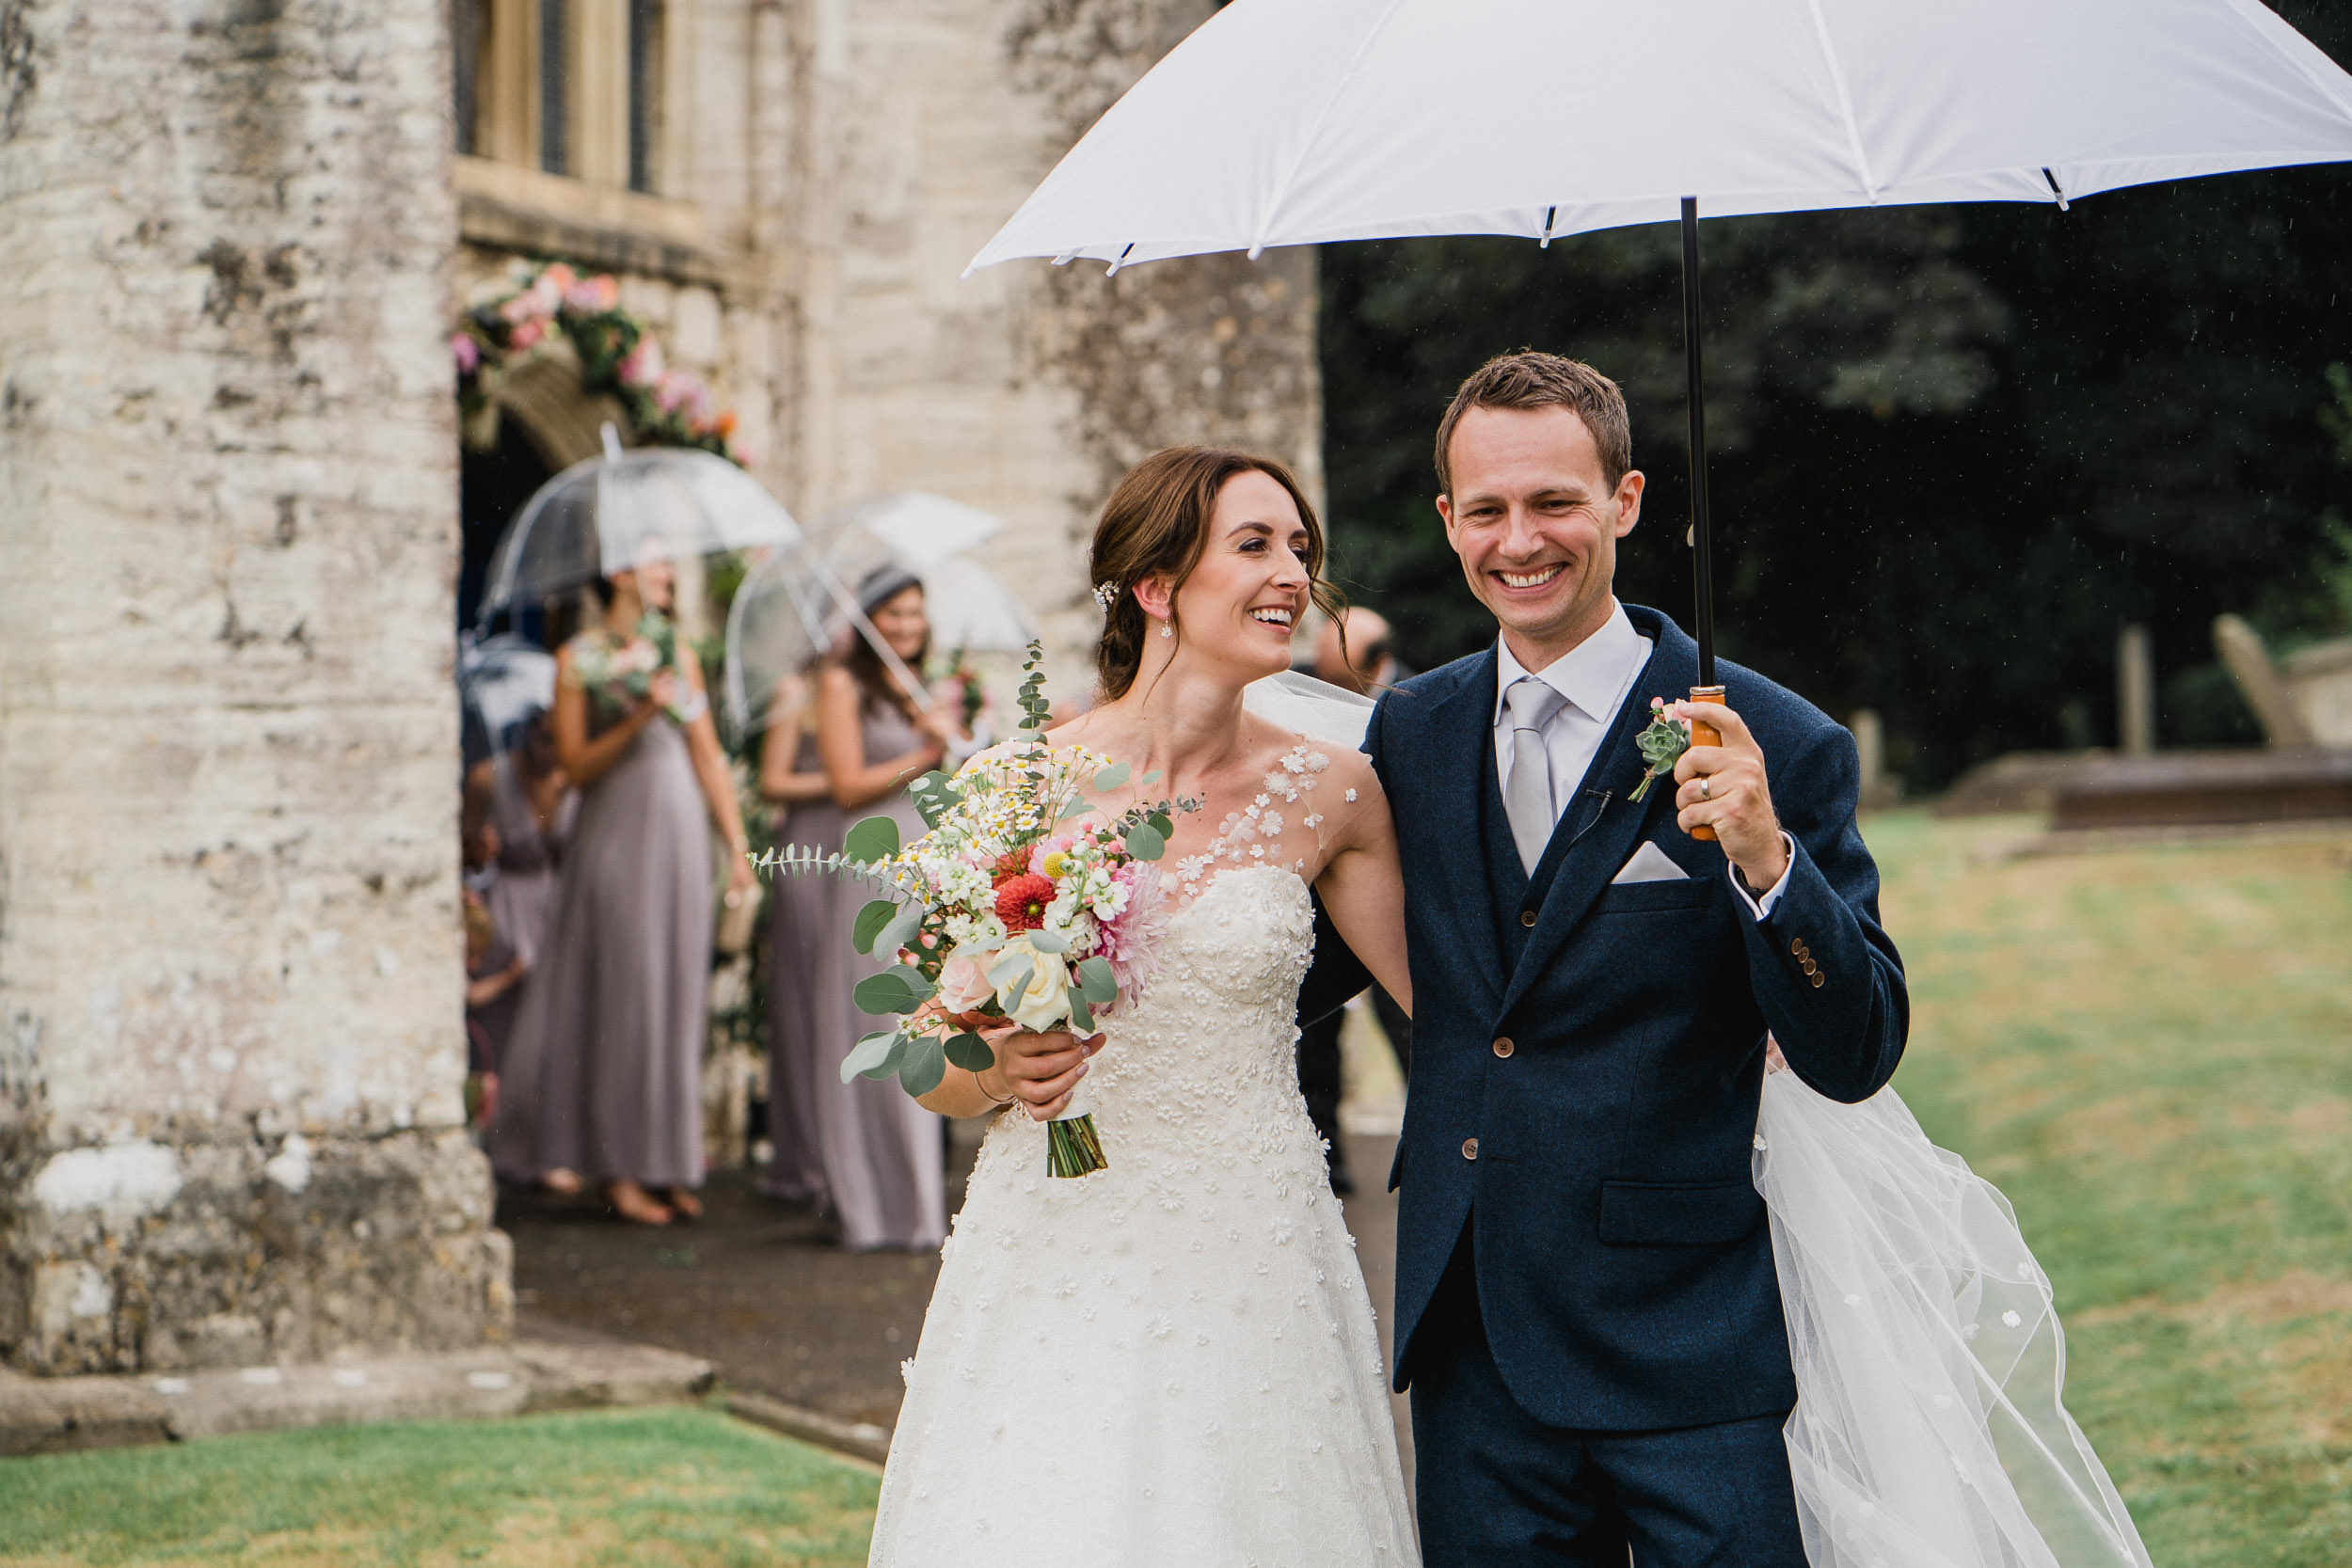 Orchardleigh Estate Wedding - Bridal Party leaving the Church with Umbrellas